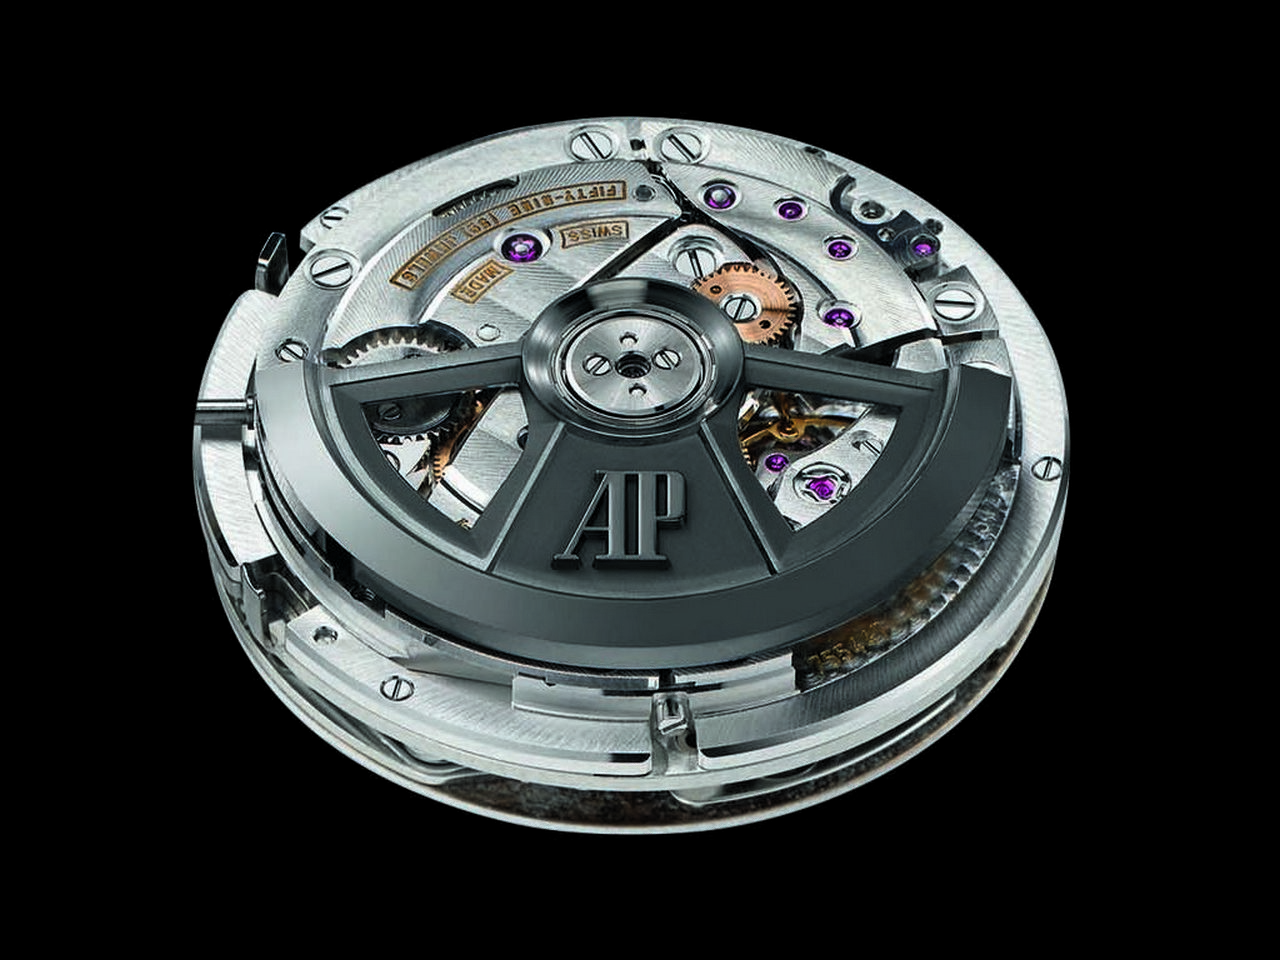 audemars-piguet-royal-oak-offshore-lebron-james-limited-edition_140-100